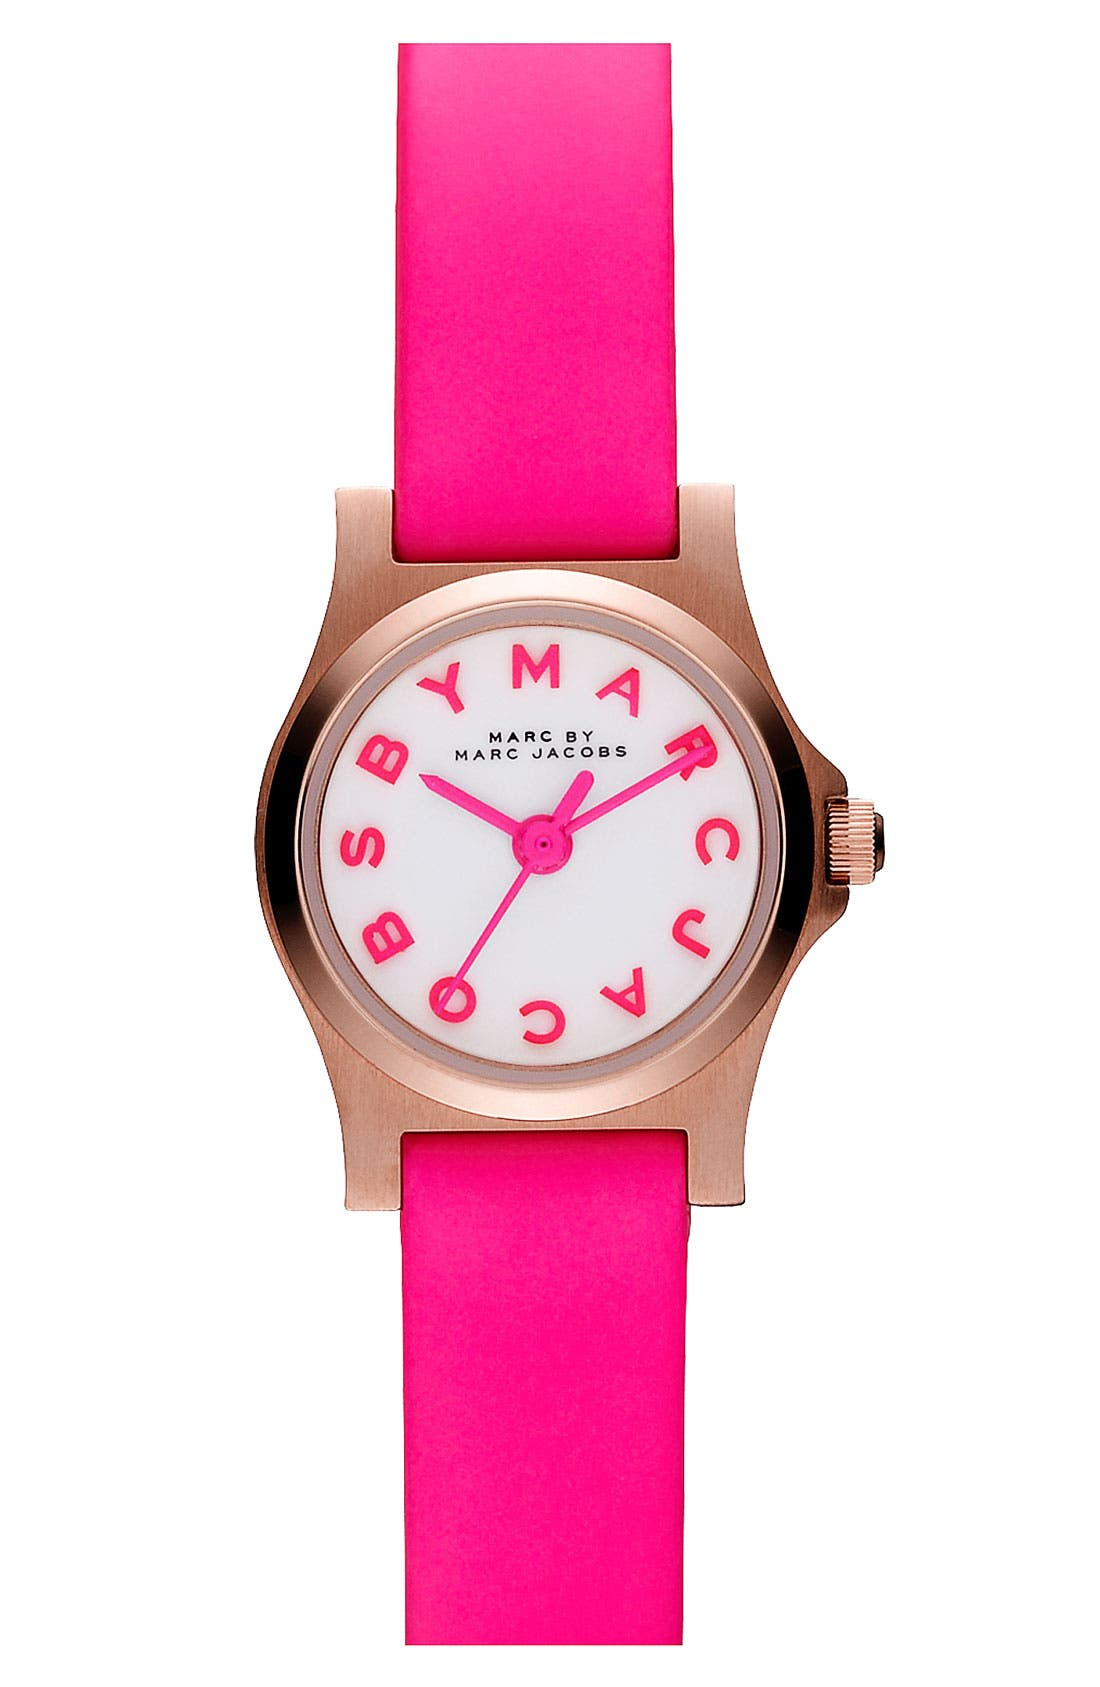 Main Image - MARC JACOBS 'Henry Dinky' Leather Strap Watch, 20mm